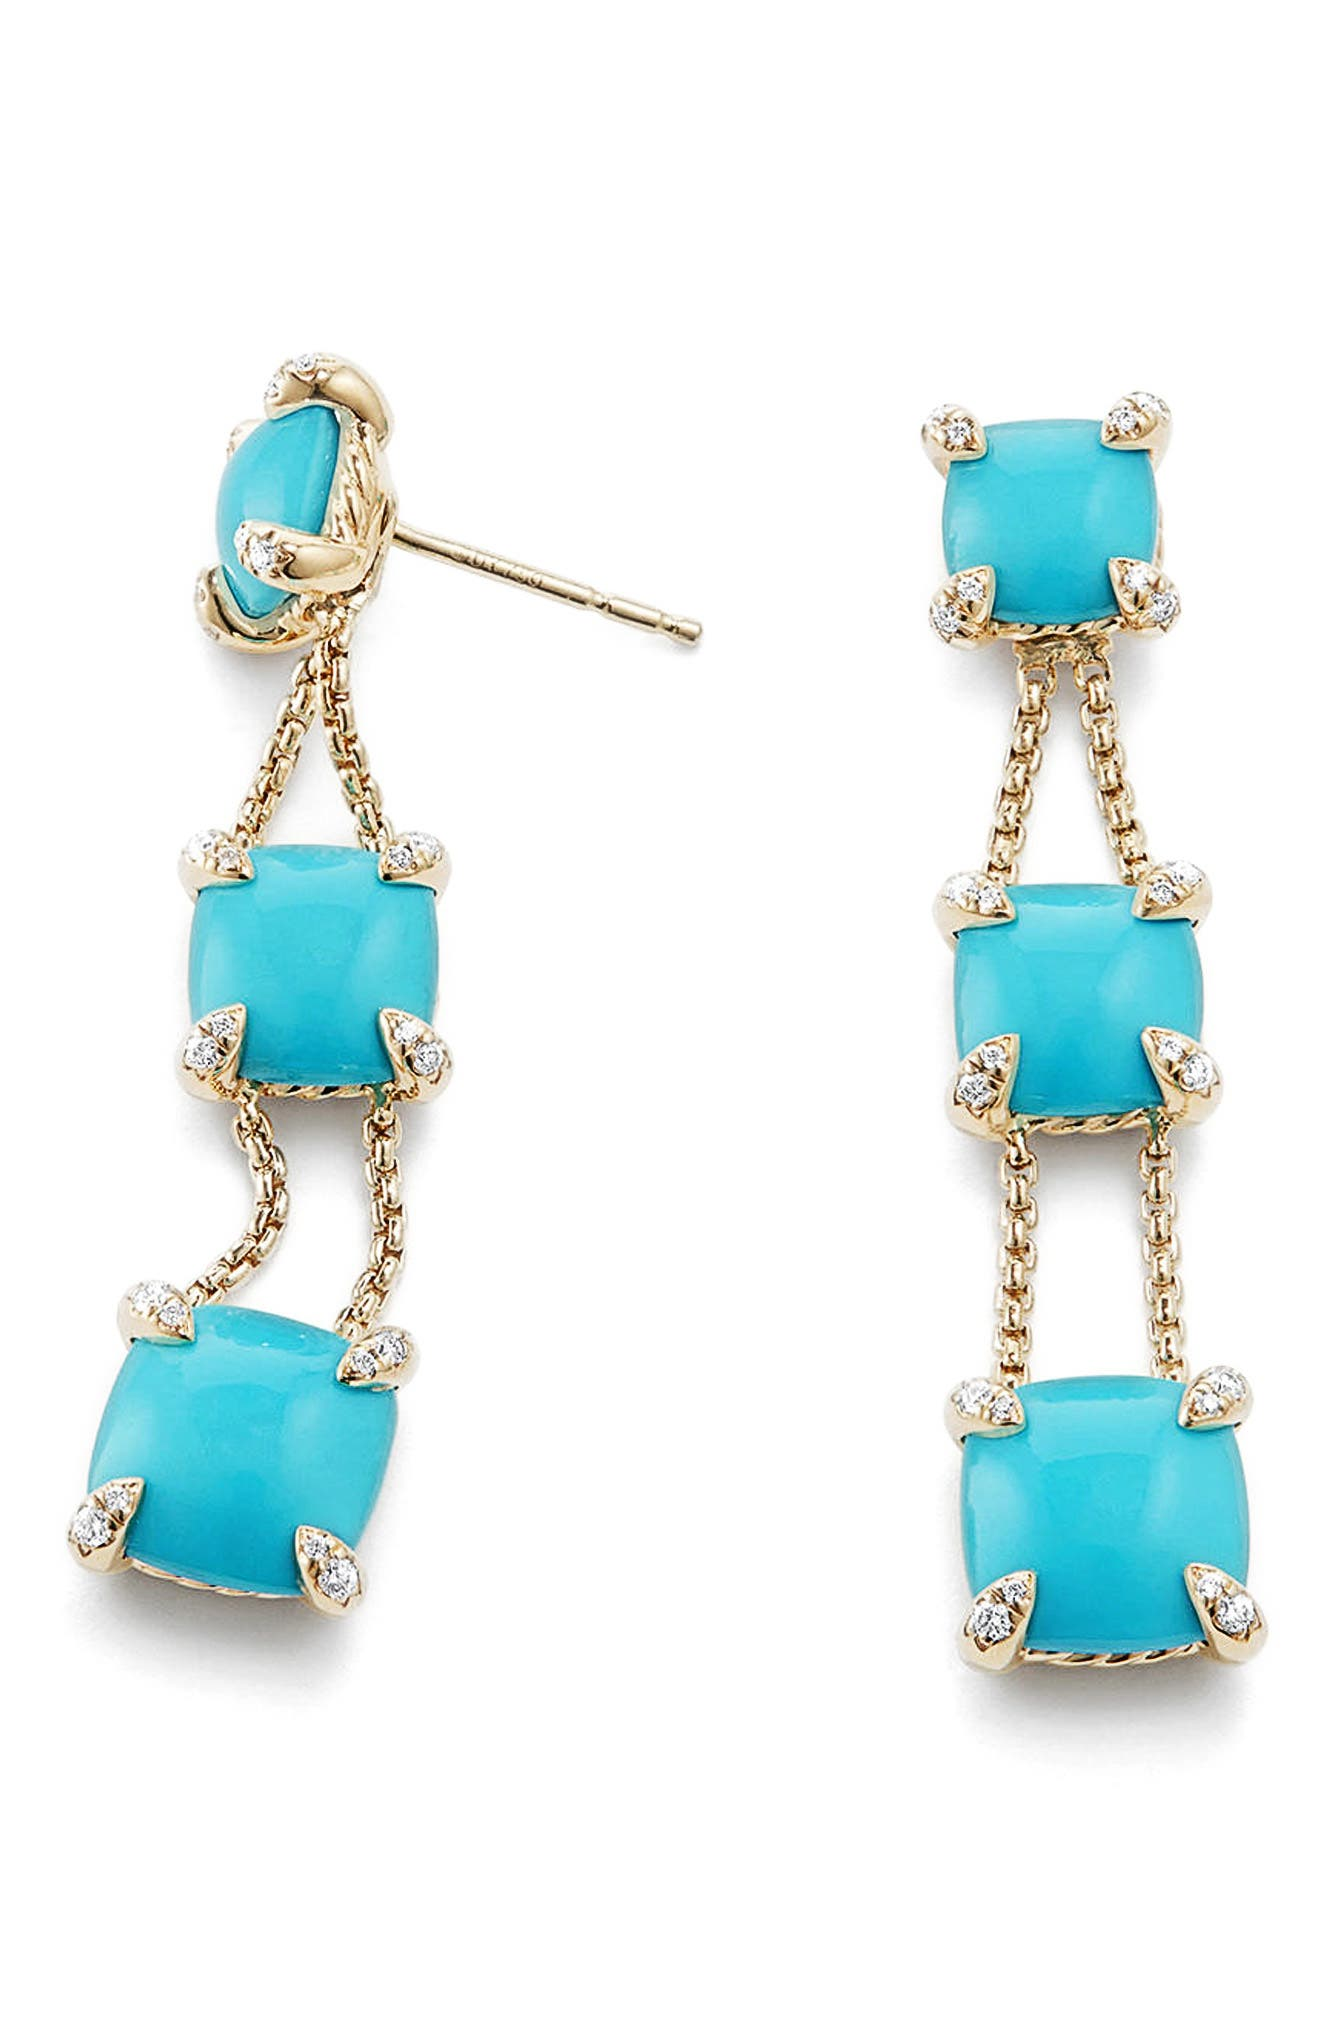 Châtelaine Linear Chain Earrings in 18K Gold with Semiprecious Stone and Diamonds,                             Alternate thumbnail 2, color,                             Turquoise